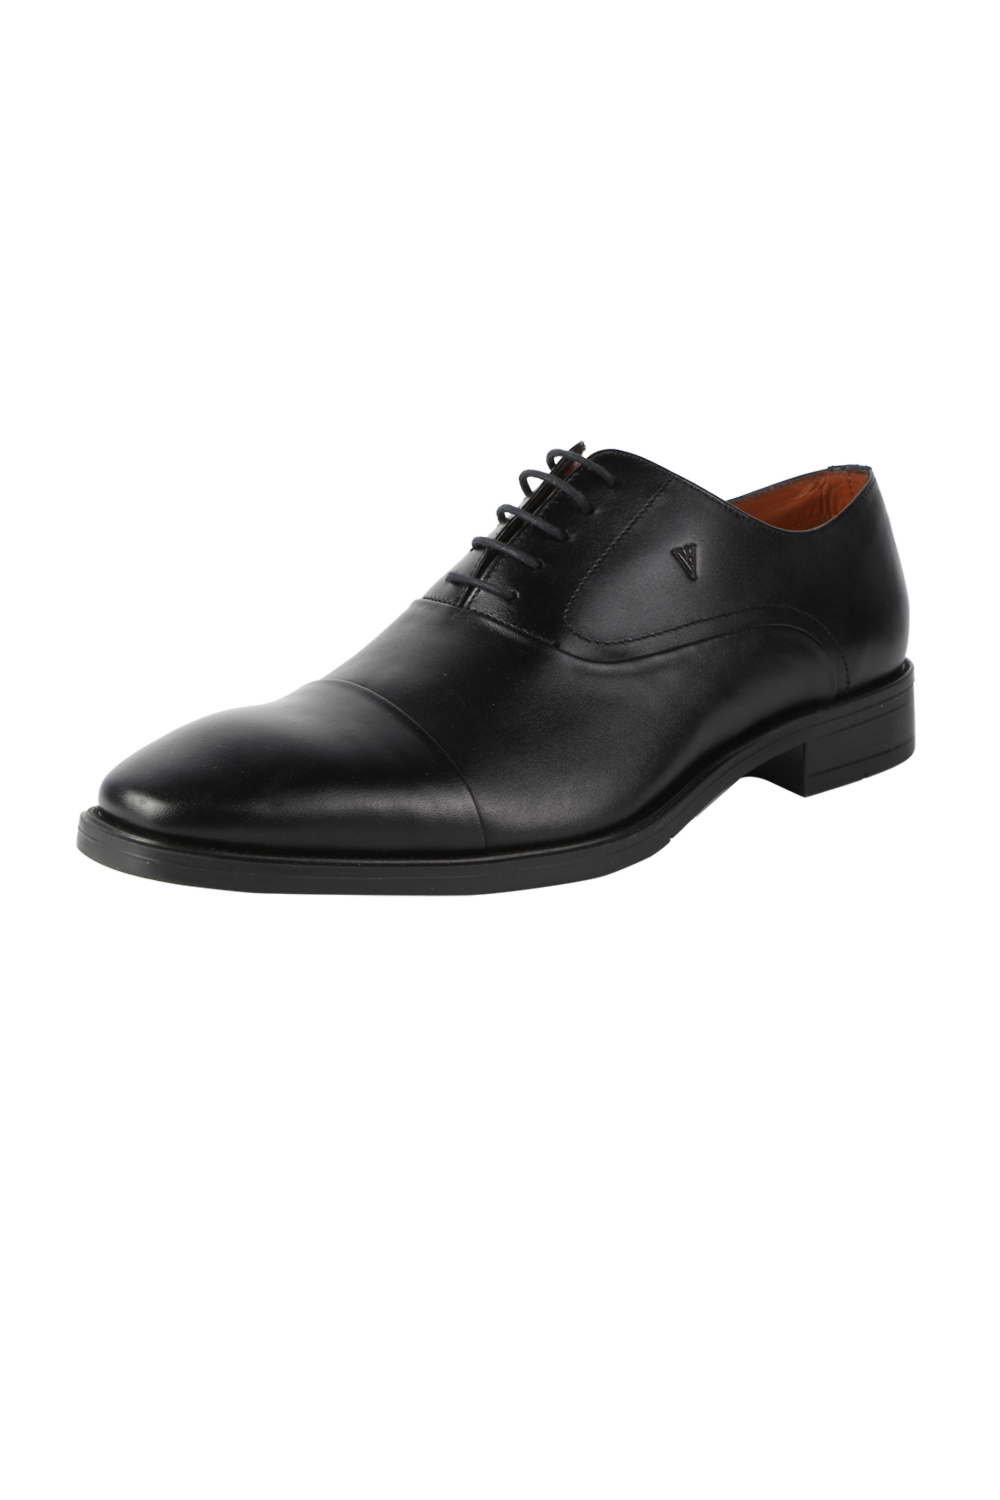 6396658e9fe Van Heusen Black Lace Up Shoes